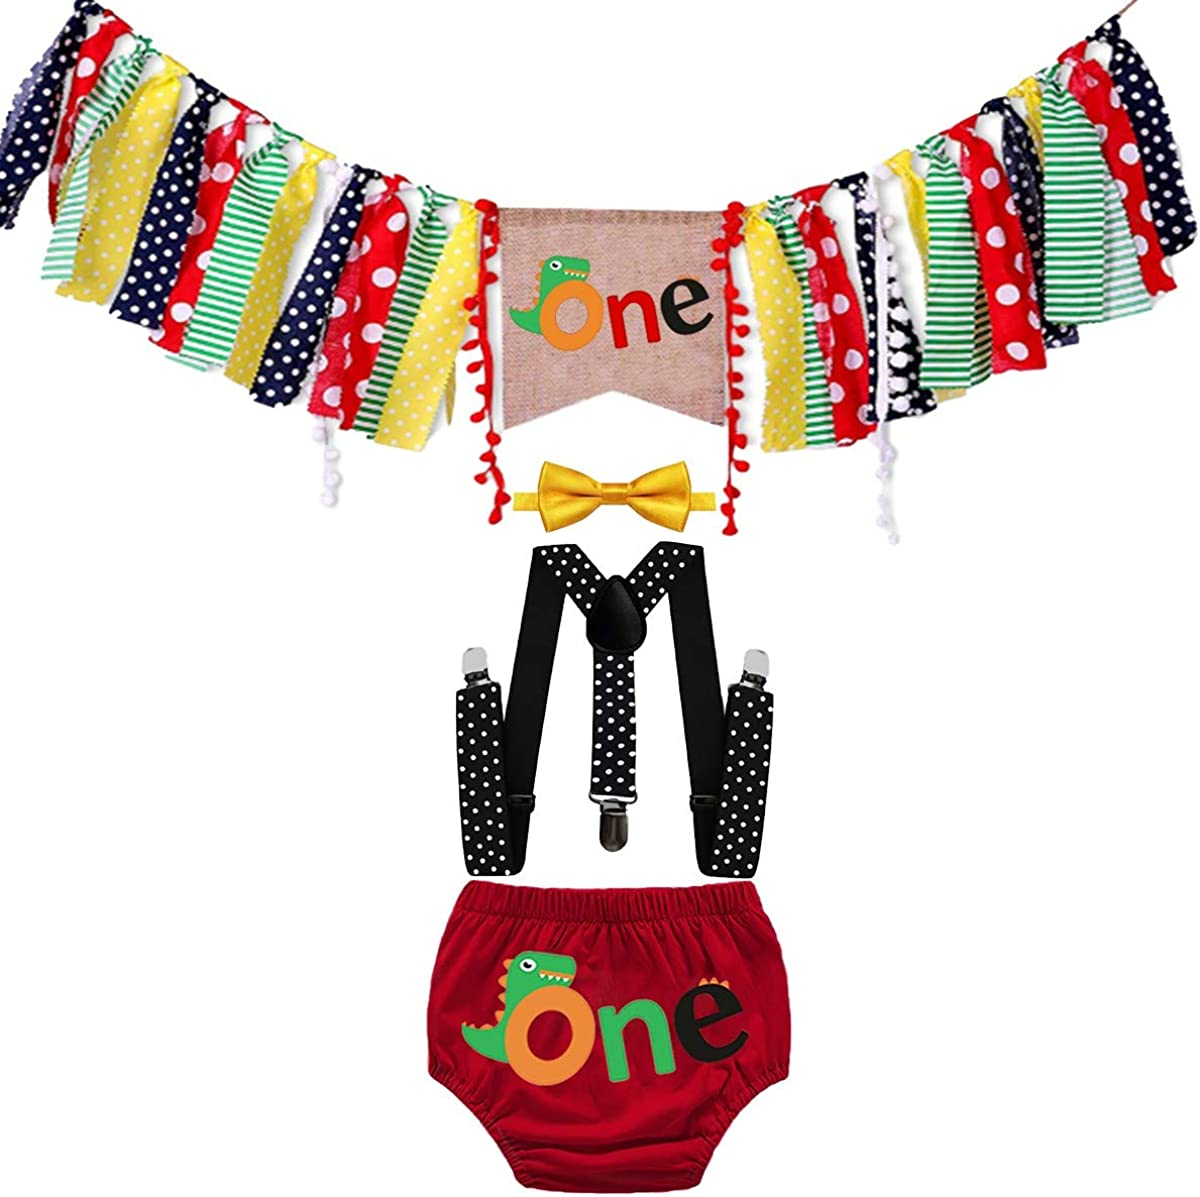 HIHCBF Baby Dinosaur Cake Smash Outfit 1st Birthday Photo Shoot Decorations Kit Highchair Banner Bloomers Suspenders Bowtie